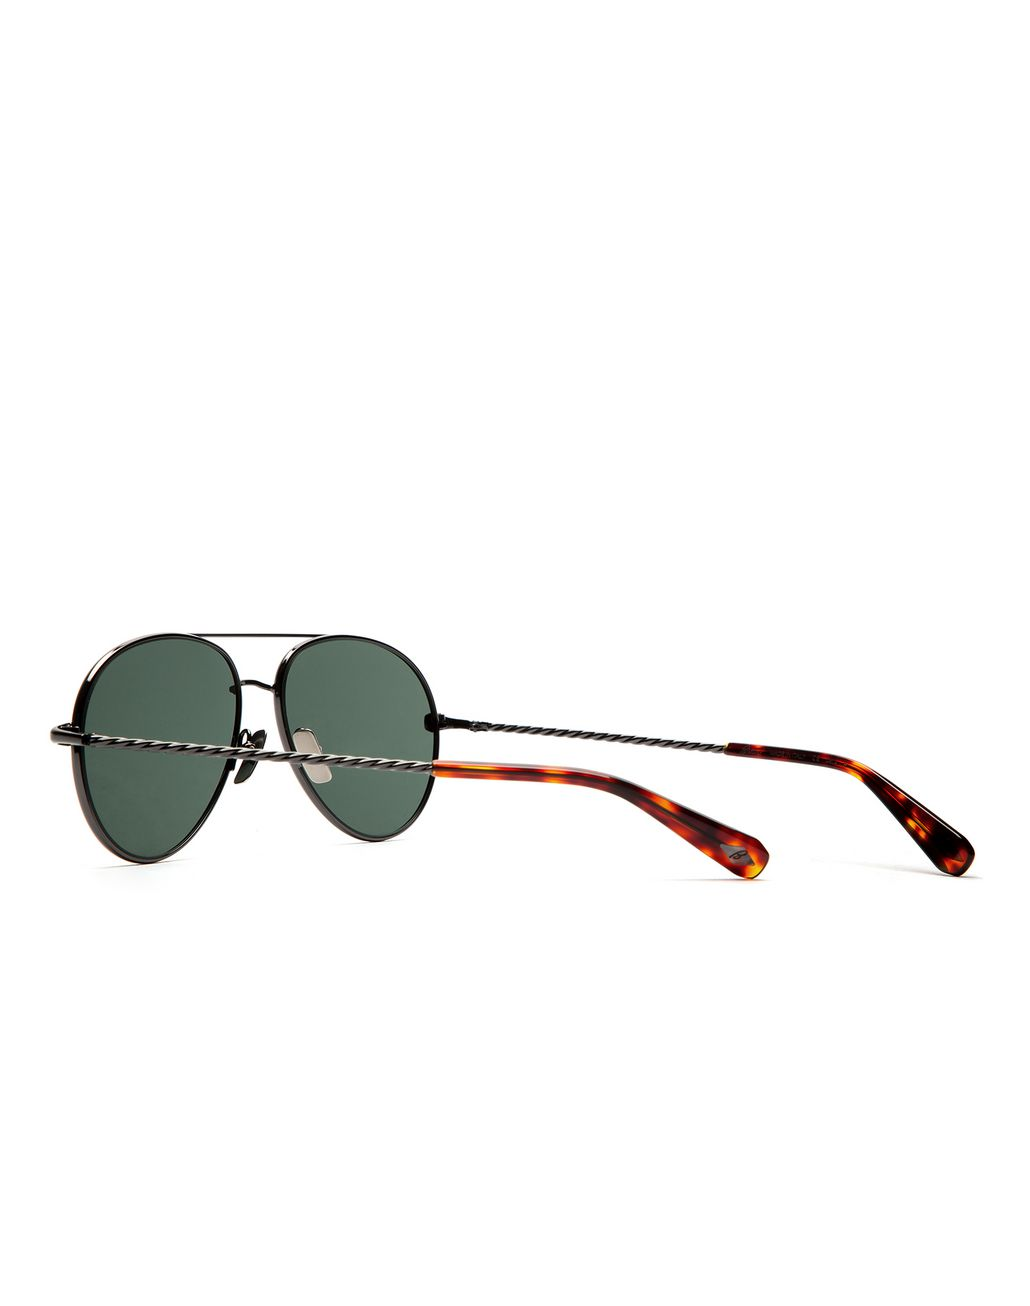 BRIONI Ruthenium Aviator Sunglasses with Green Lenses Sunglasses Man d